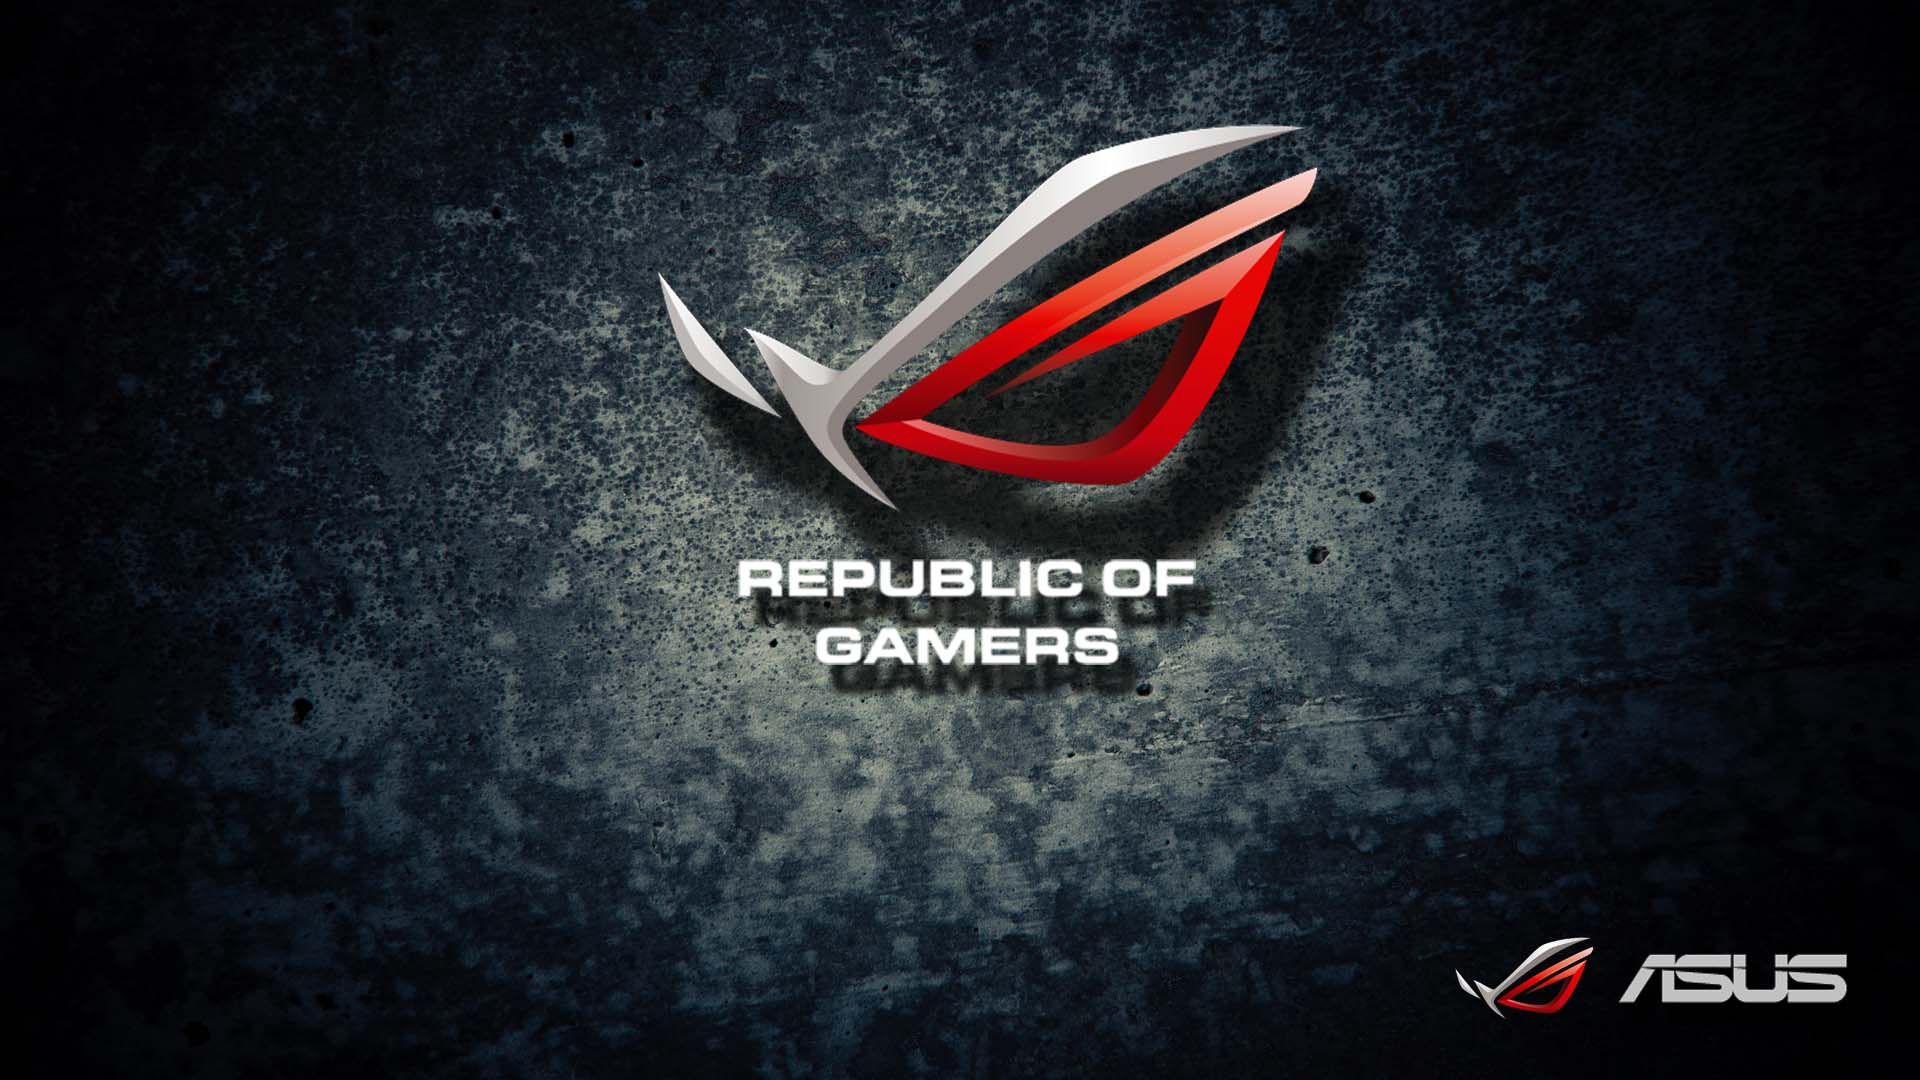 Republic of Gamers HD Backgrounds 1920x1080